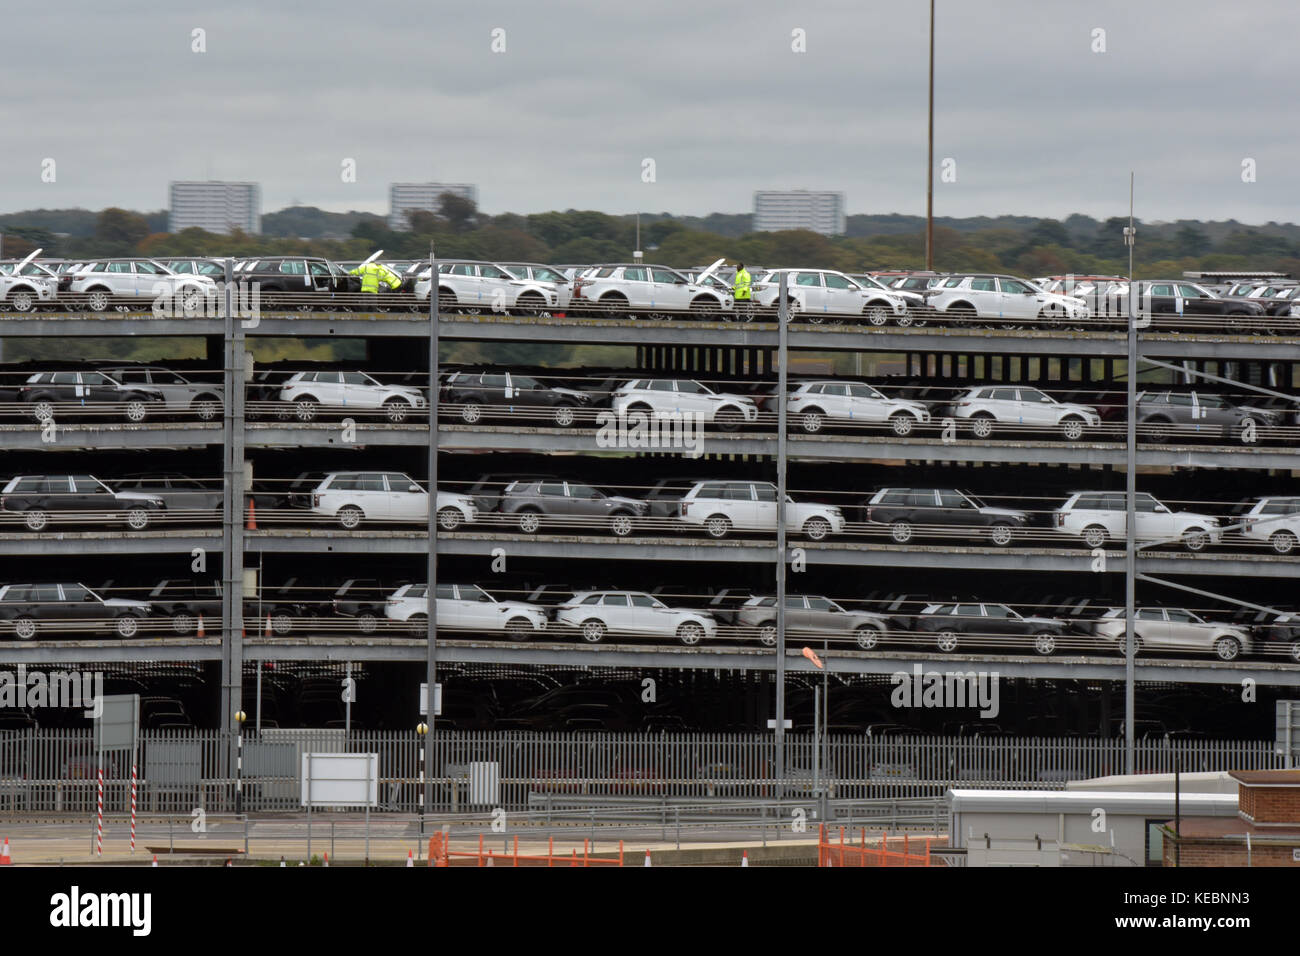 a multi-storey car park in Southampton docks or port full of new cars built or made in the UK ready for export globally Stock Photo